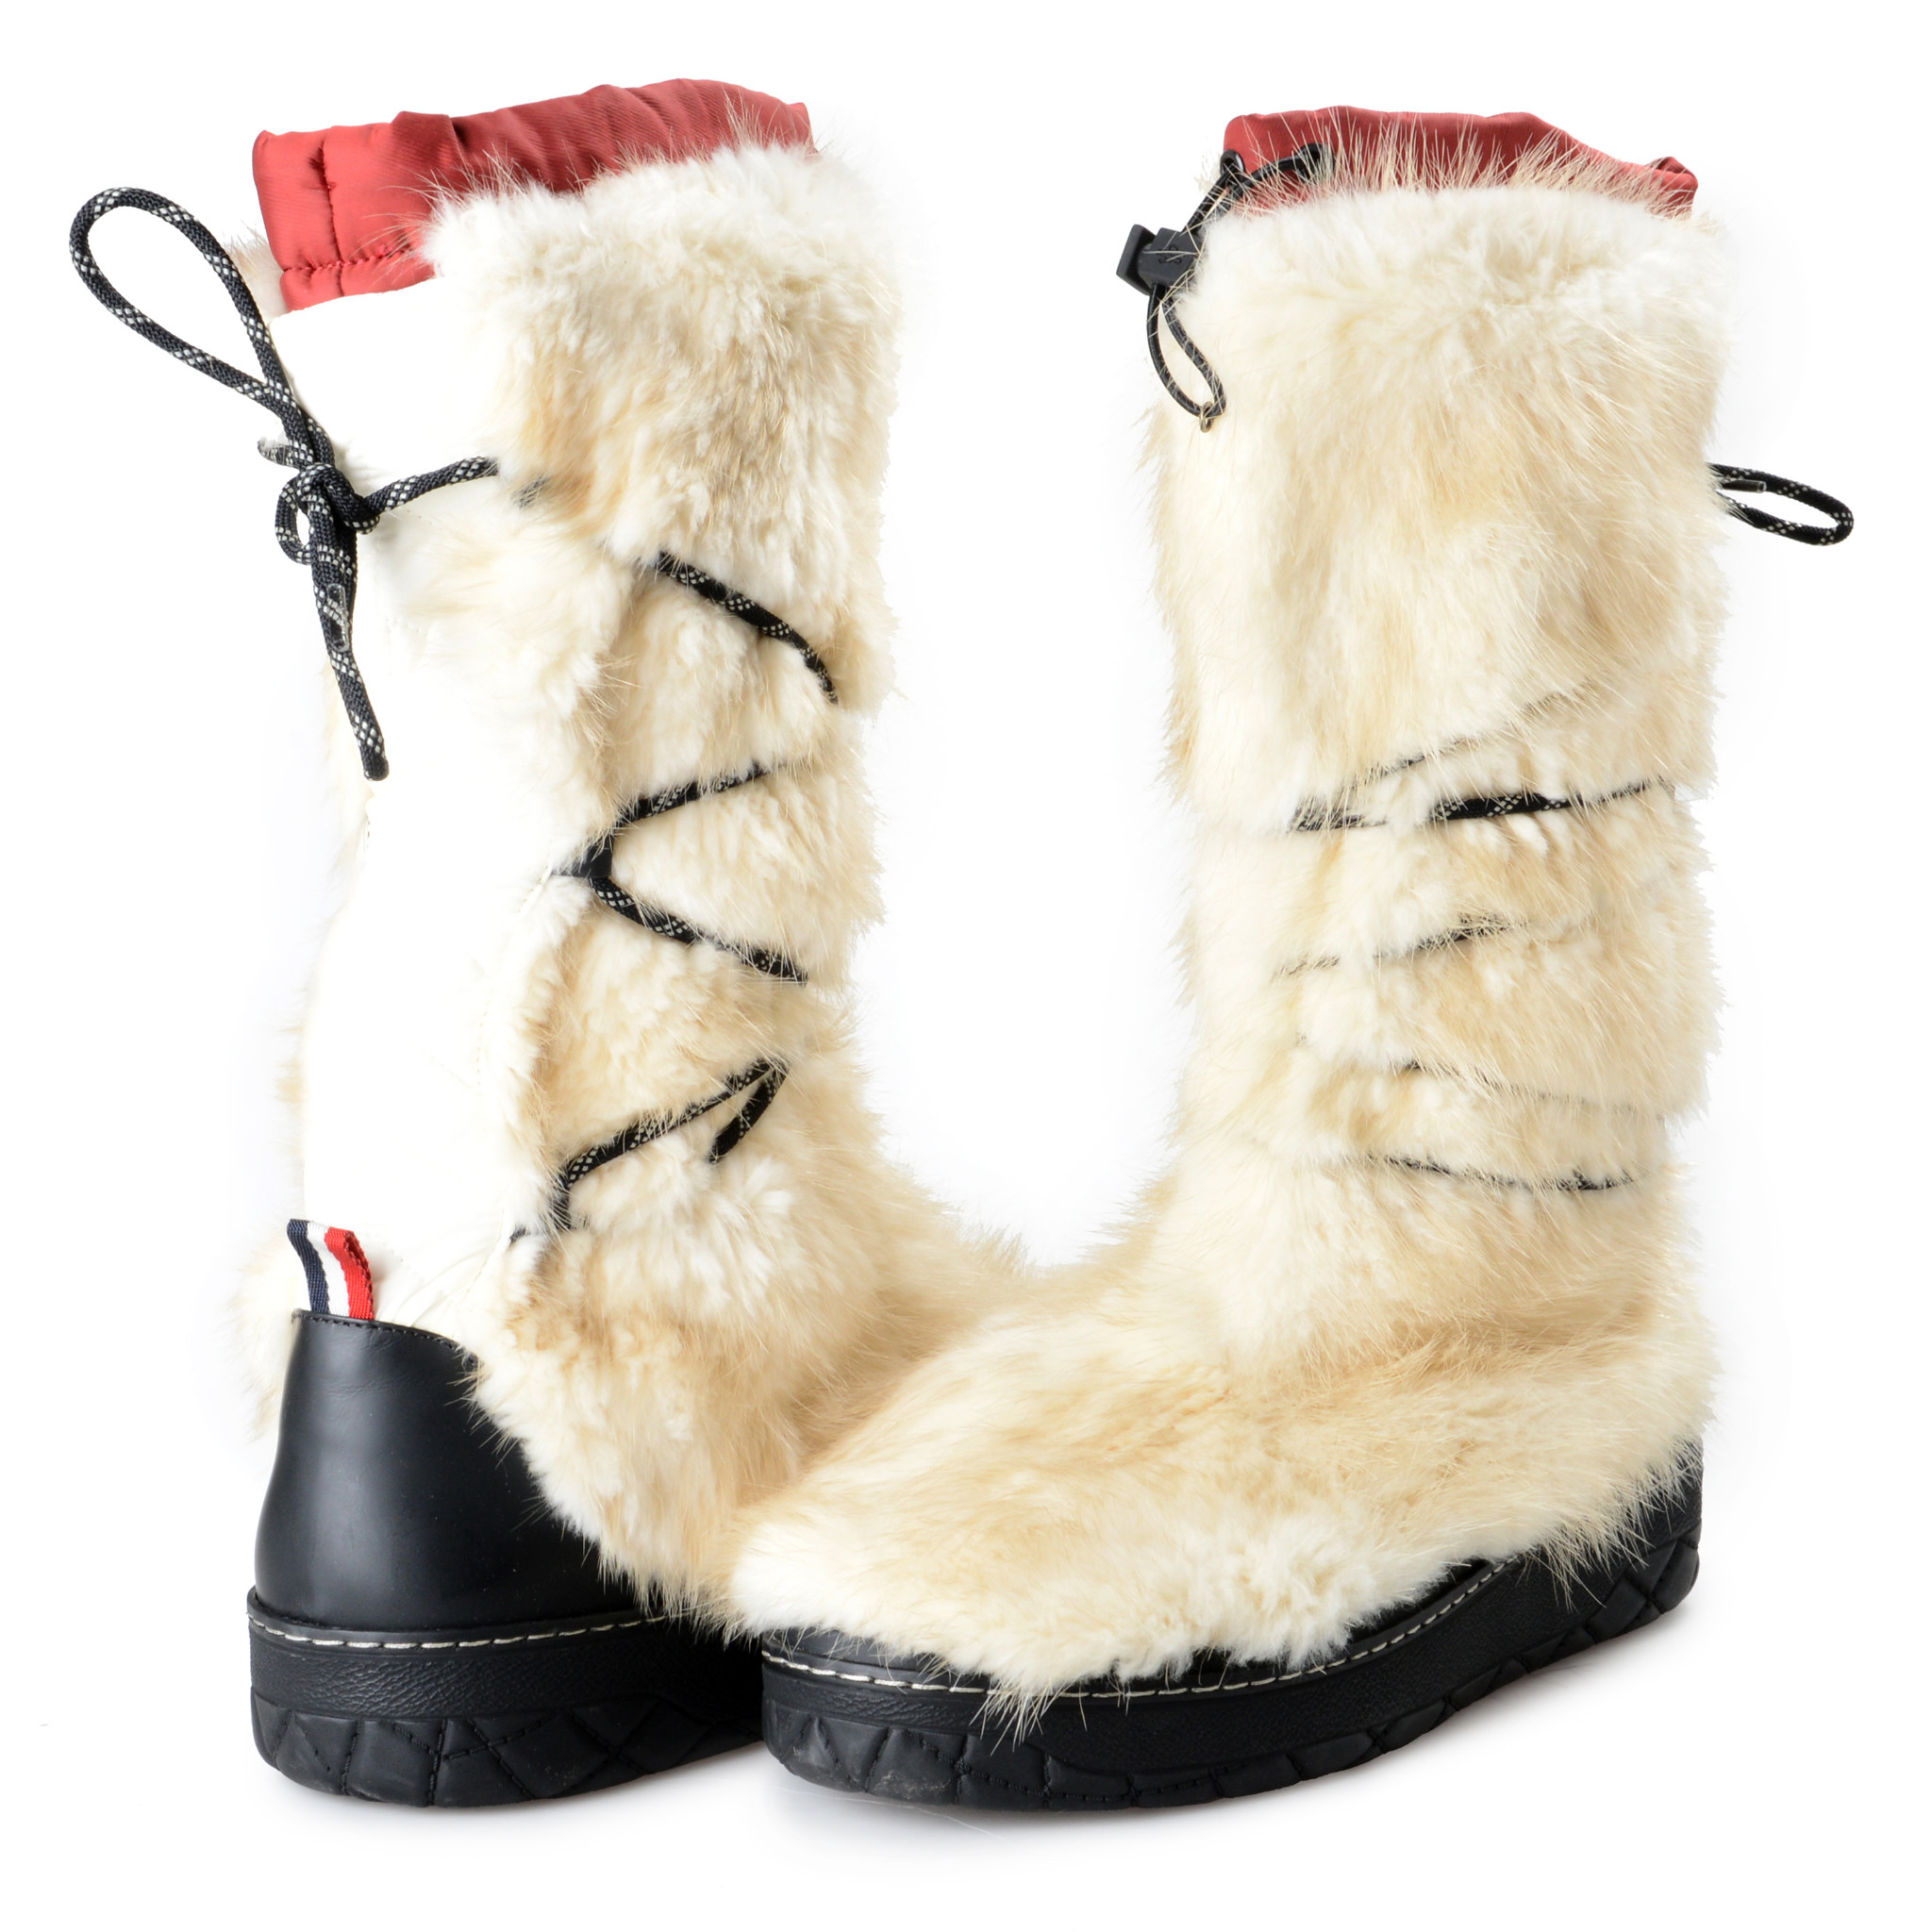 MONCLER MEN'S OFF White Leather & Real Fur Snow Boots Shoes